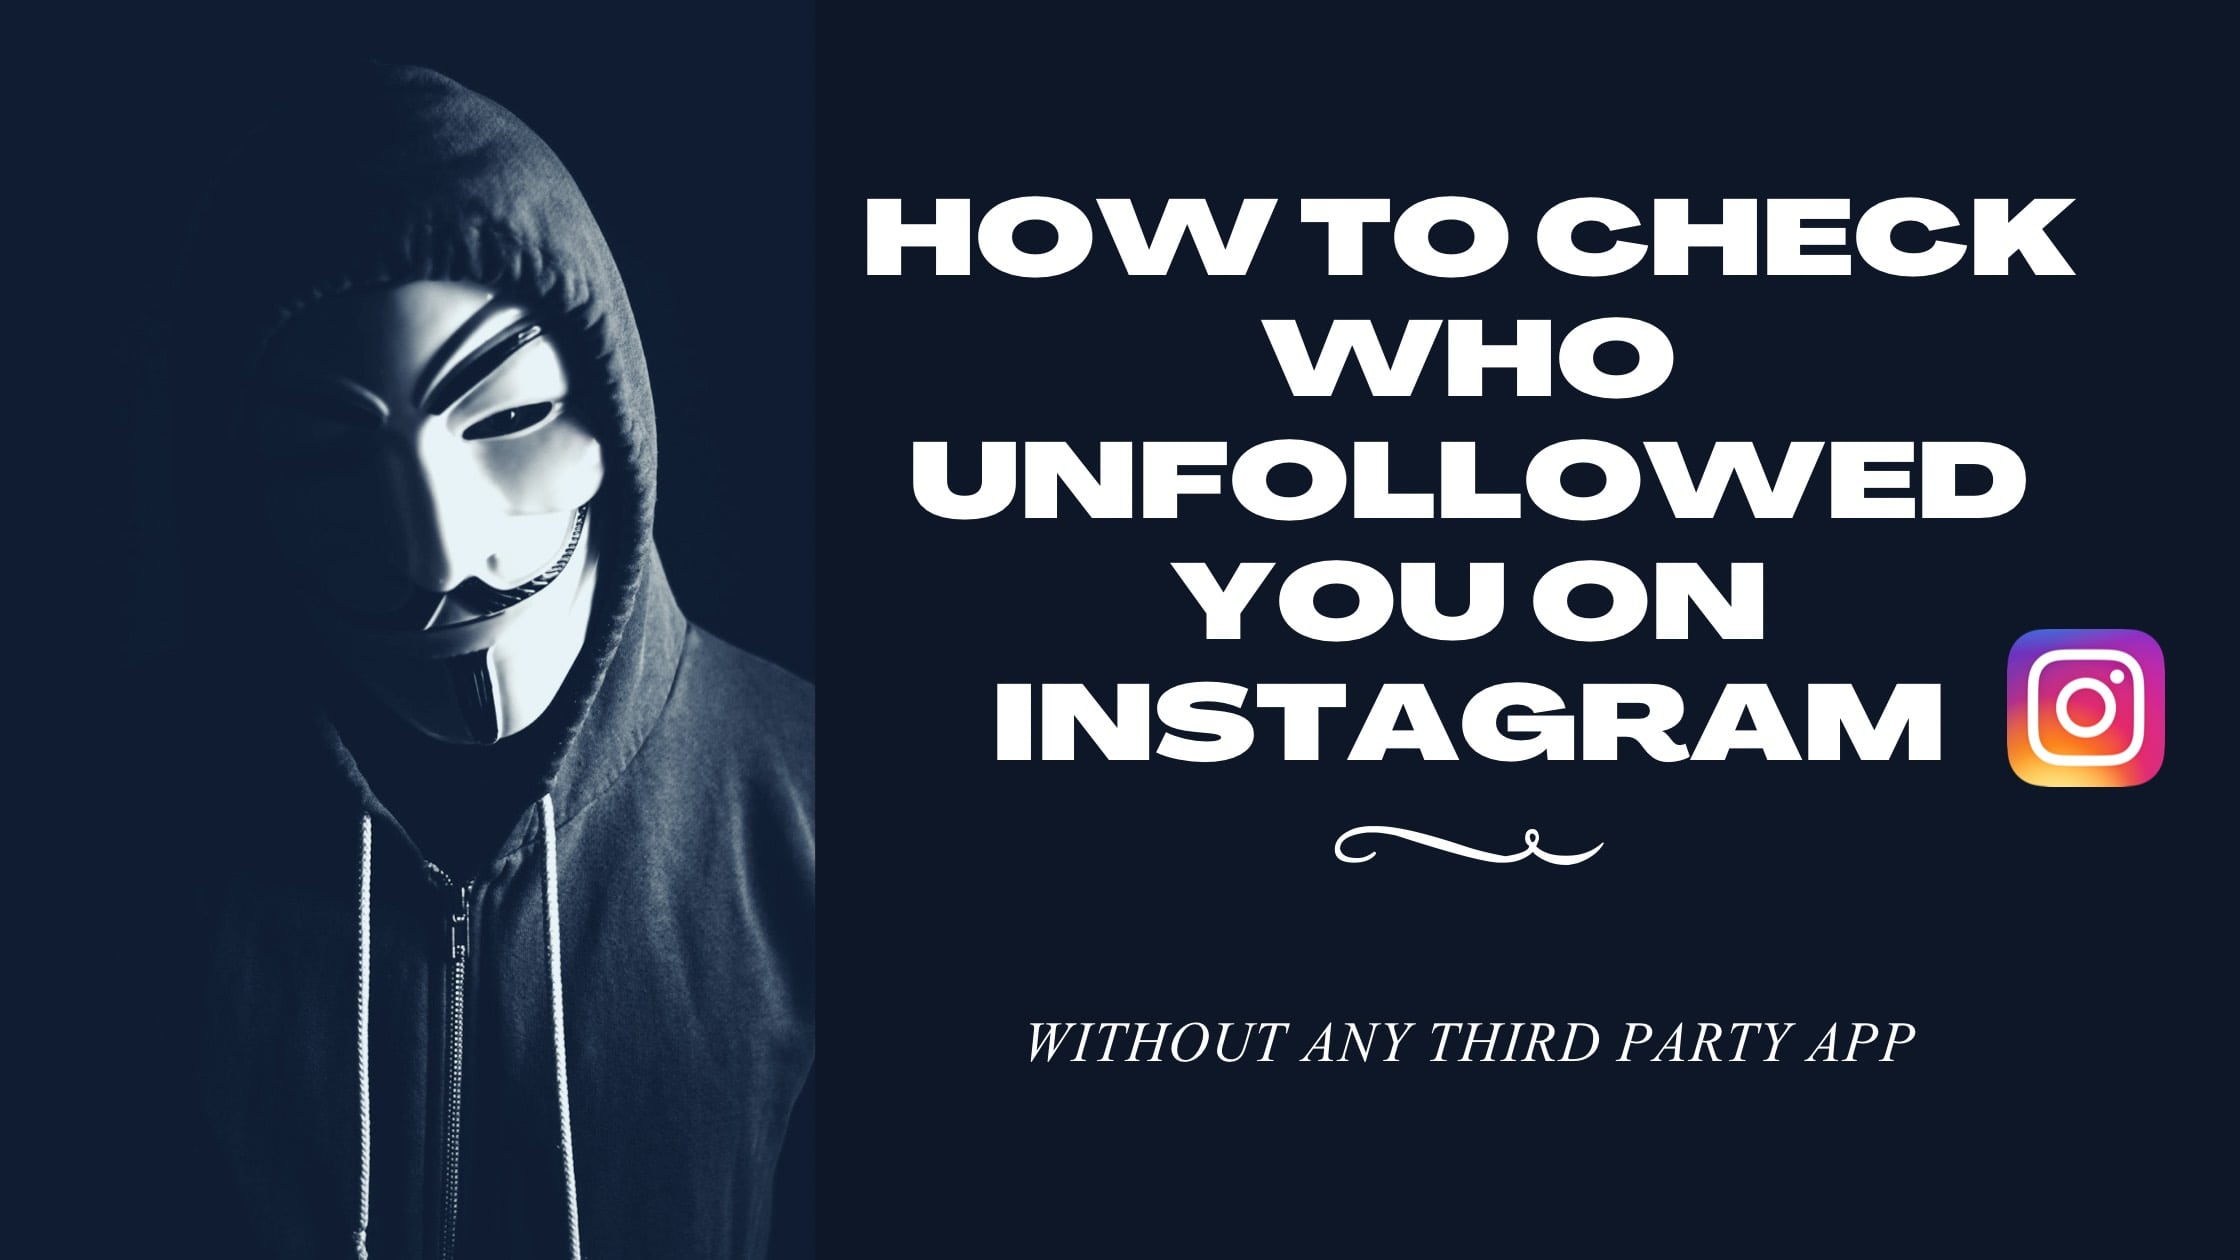 How To Check Who Unfollowed You On Instagram Without An App 2021